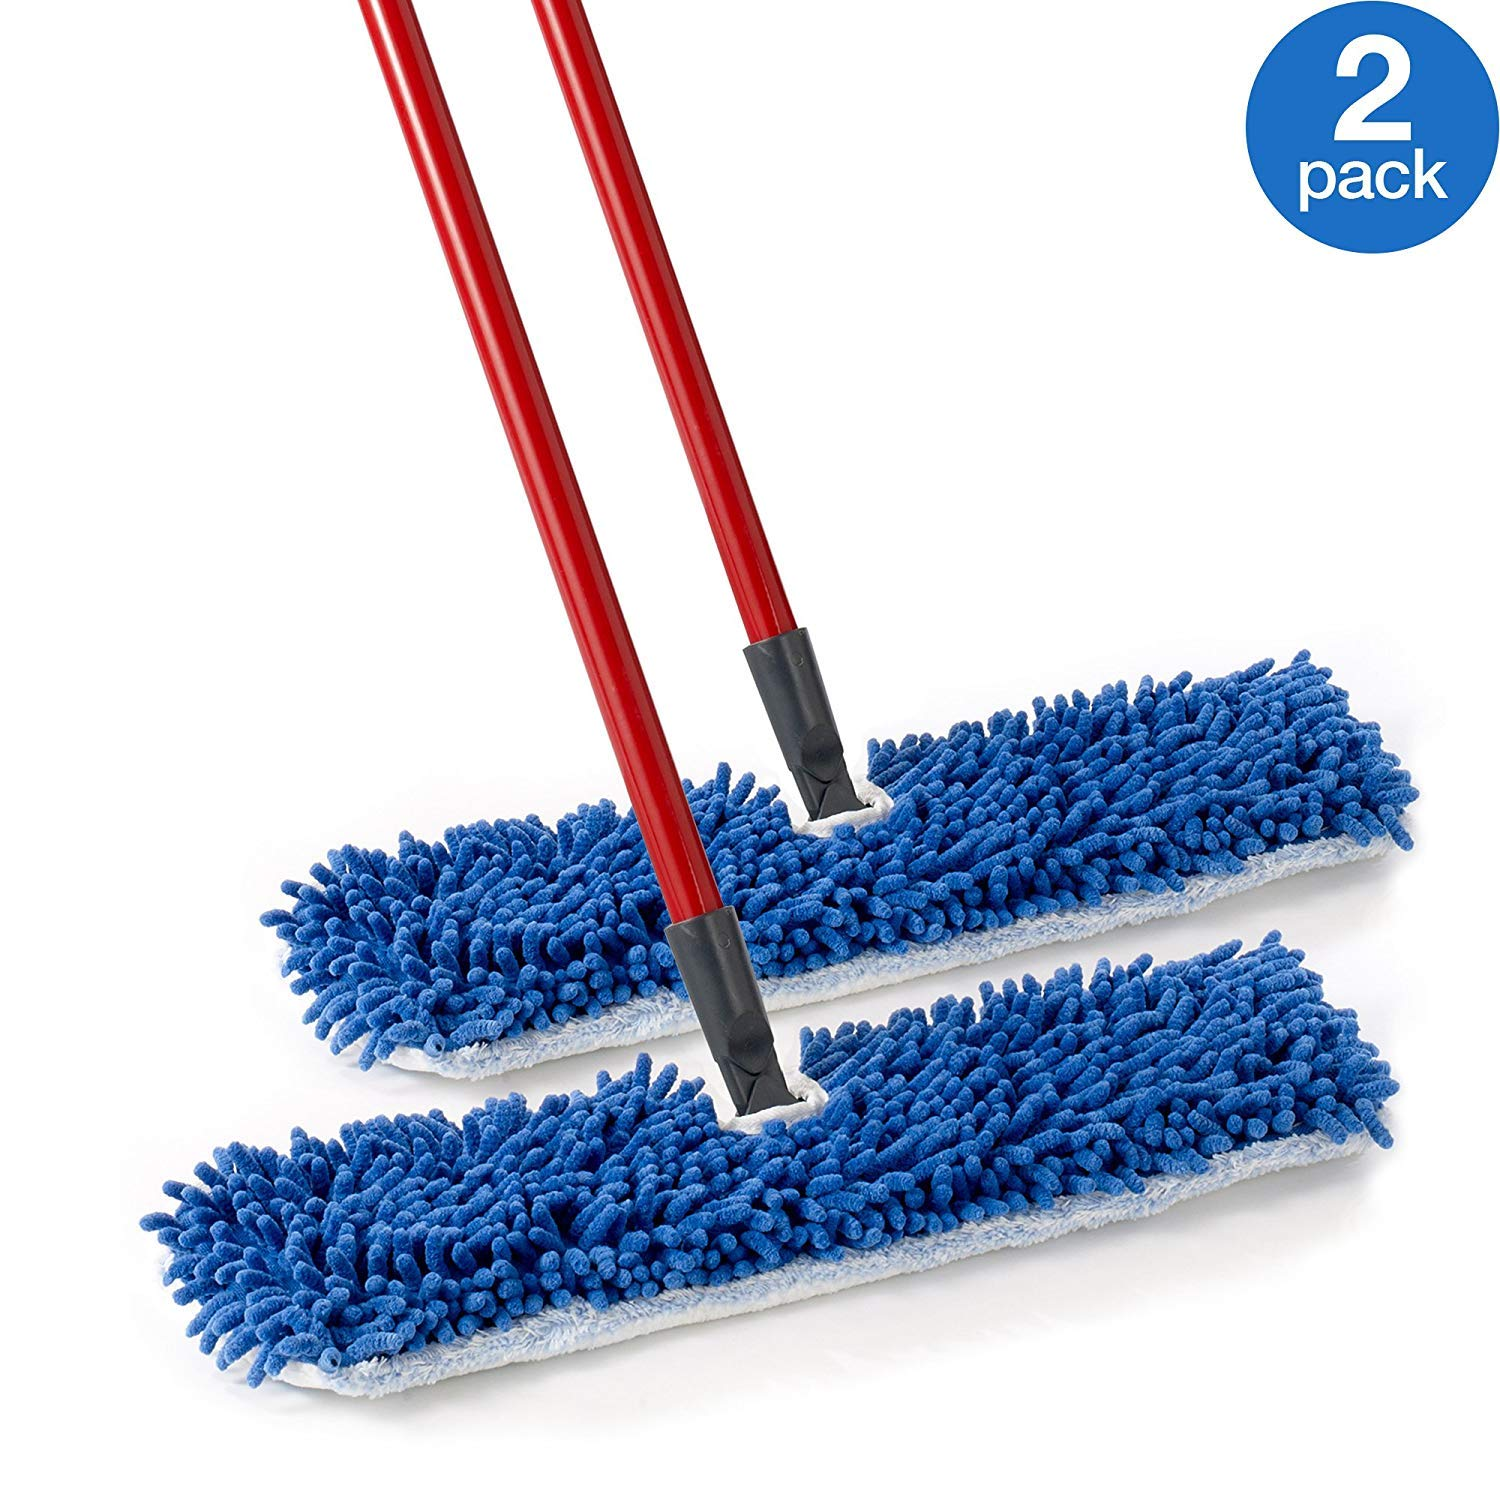 O-Cedar Dual Action Microfiber Flip Mop Damp/Dry All Surface Mop (Pack of 2) by O-Cedar